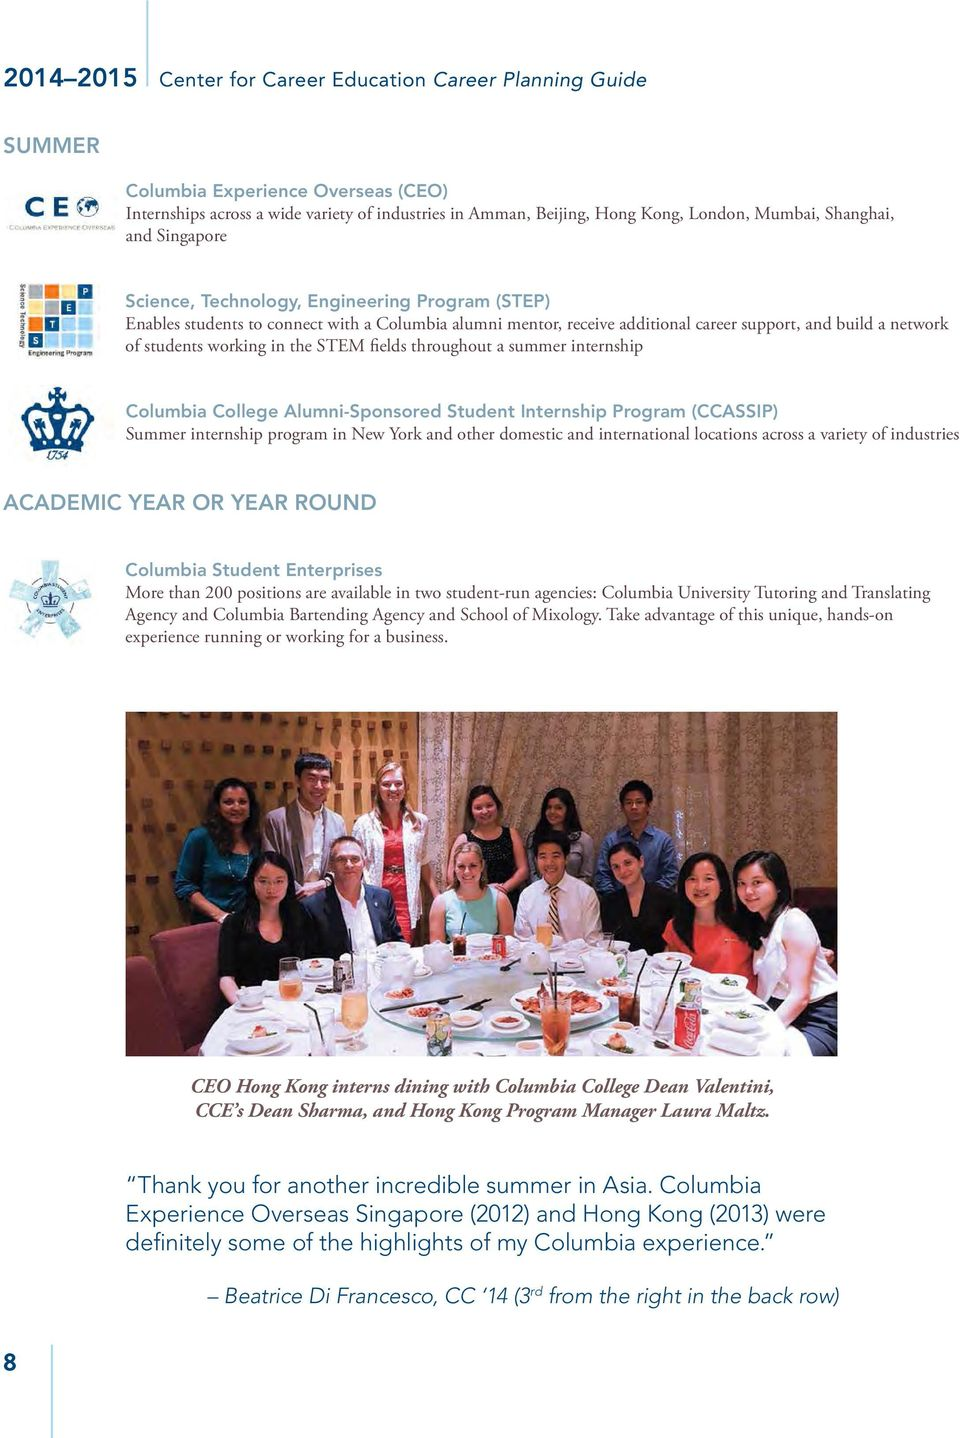 Columbia College Alumni-Sponsored Student Internship Program (CCASSIP) Summer internship program in New York and other domestic and international locations across a variety of industries ACADEMIC